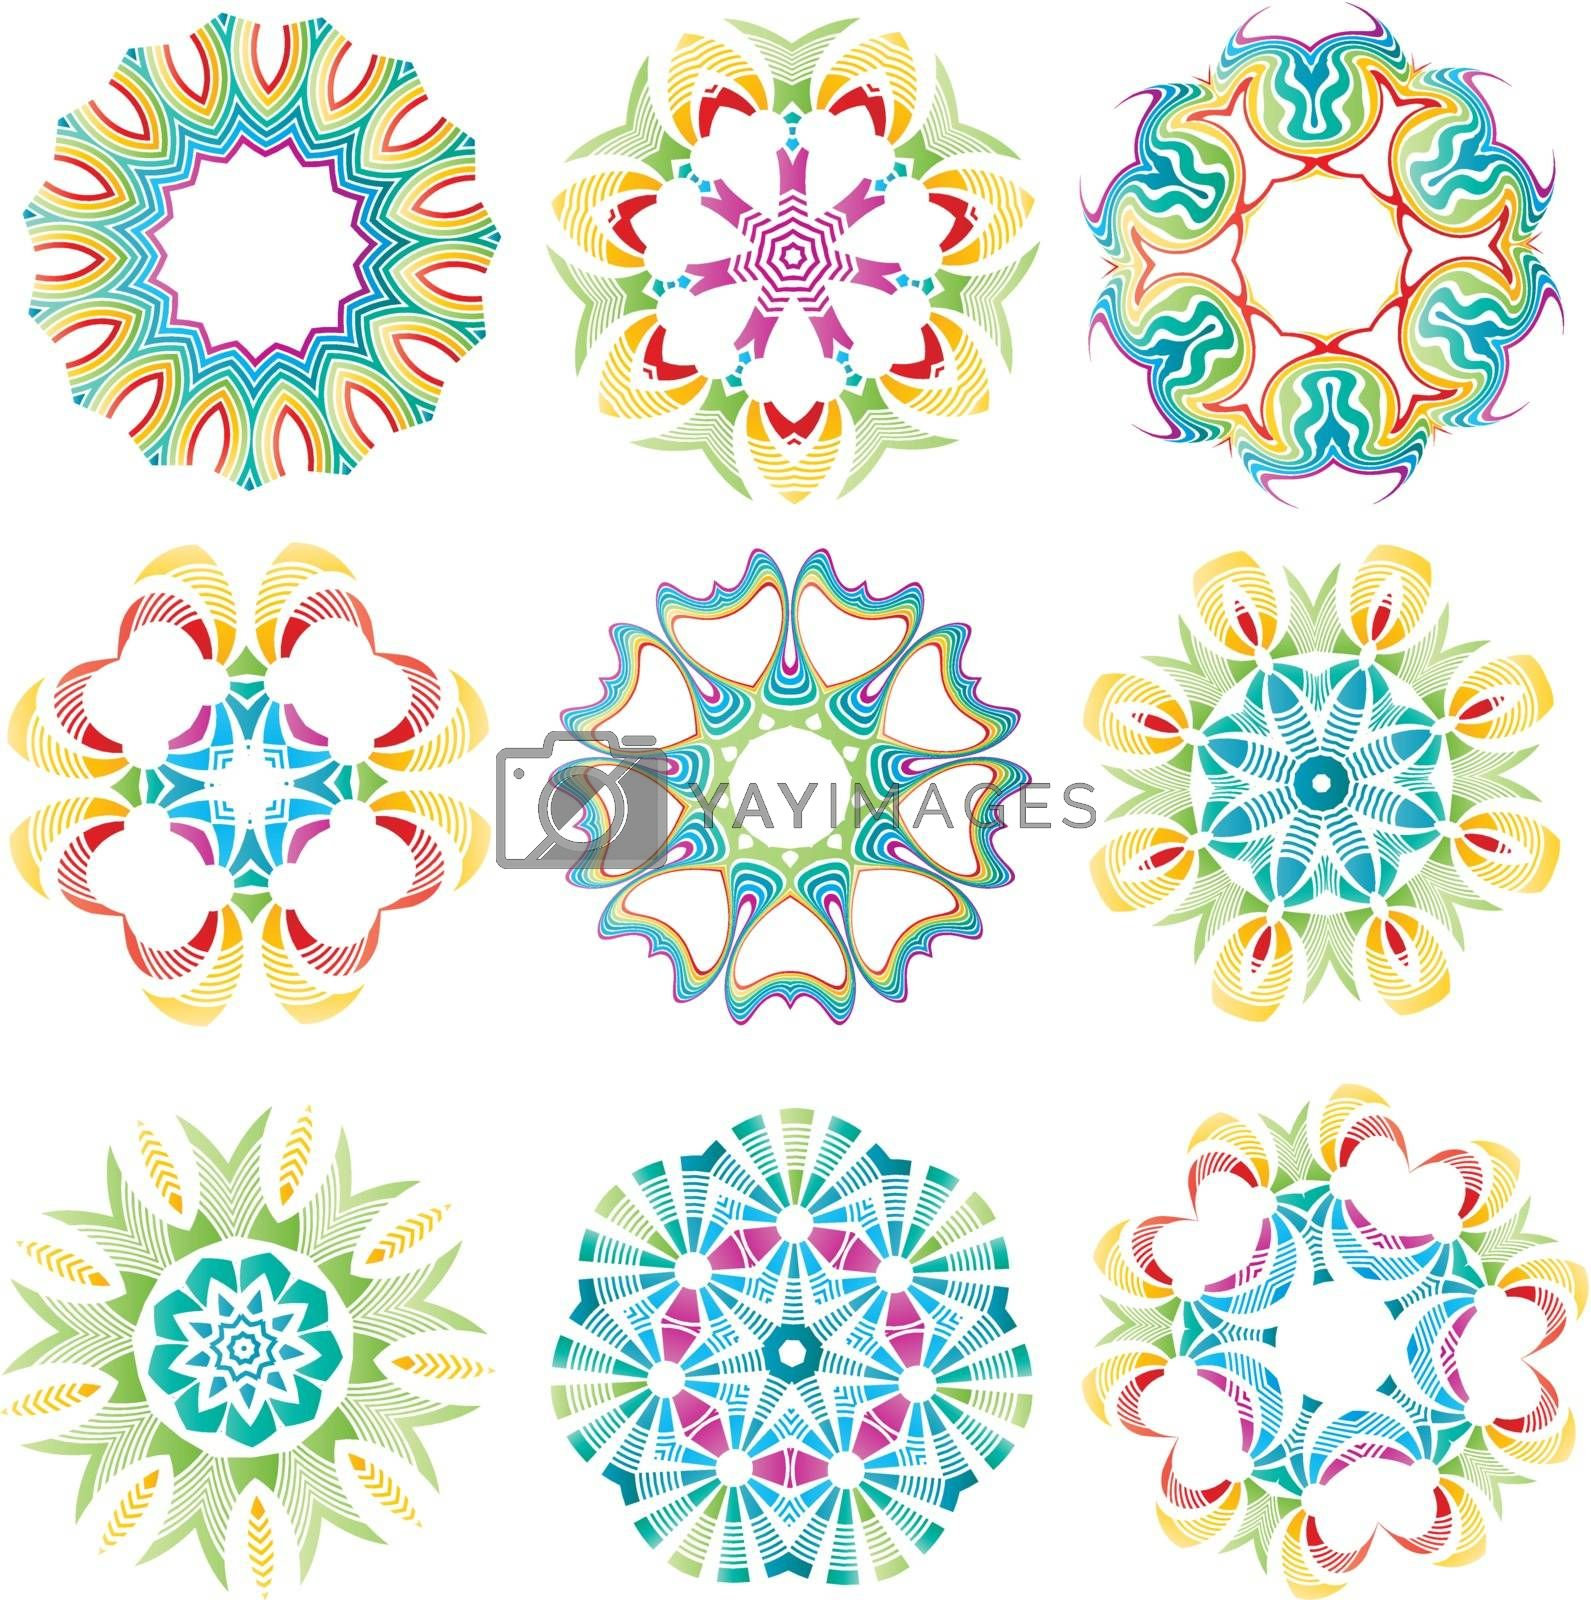 Beautiful colorful abstract flower elements for creative design